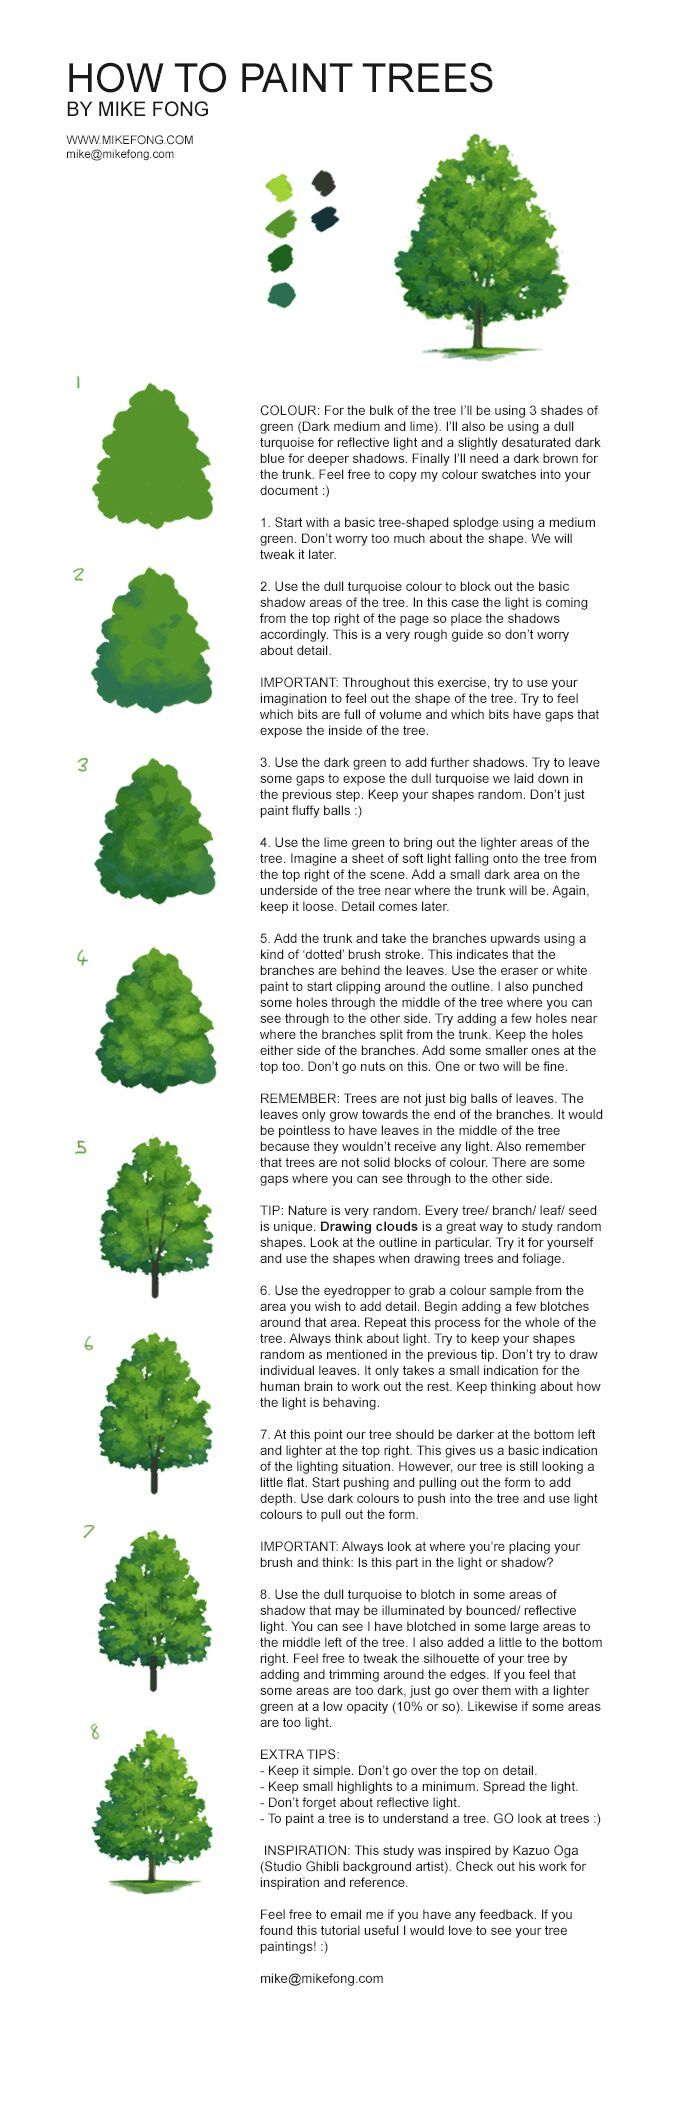 HOW TO PAINT TREES  BY MIKE FONG ... TAGS: Tree, Painting, Tutorial, digital painting, concept, art, tips, foliage